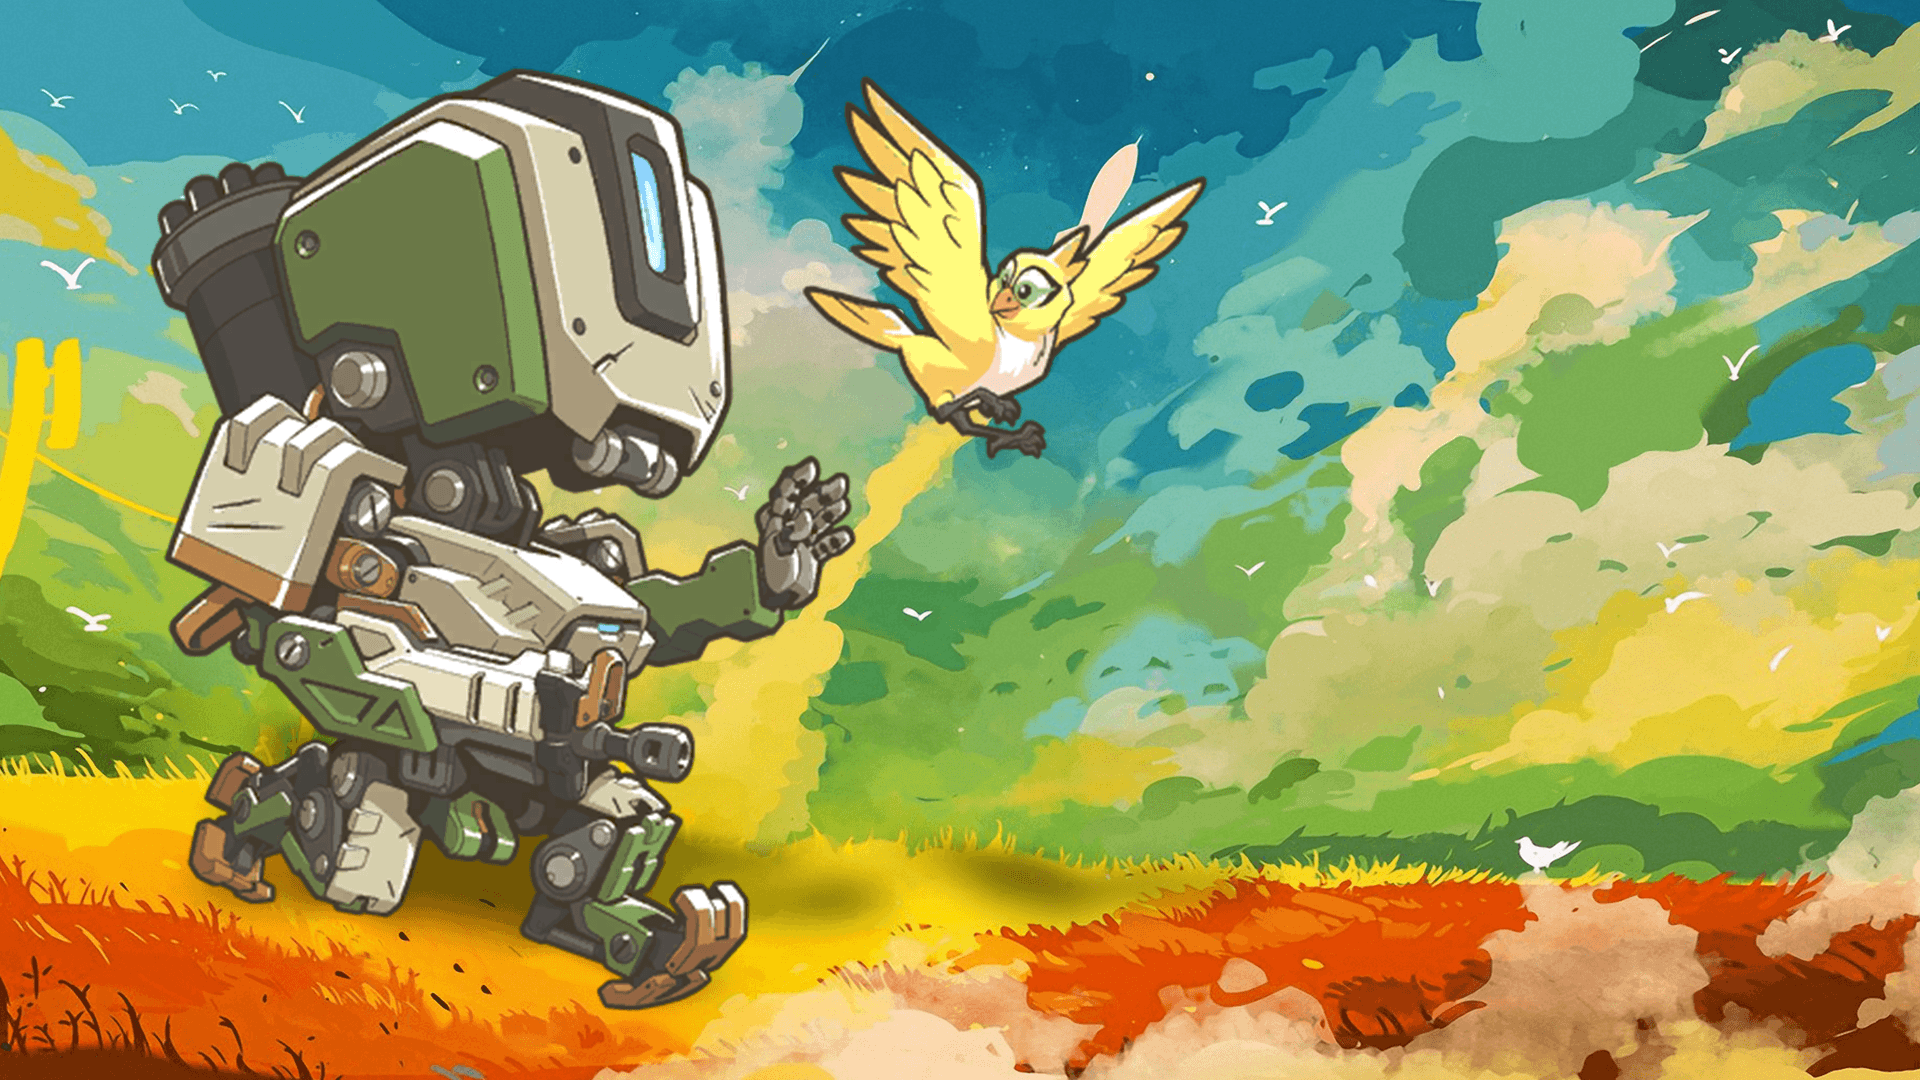 Overwatch Wallpaper Dual Monitor: Bastion Overwatch Wallpapers